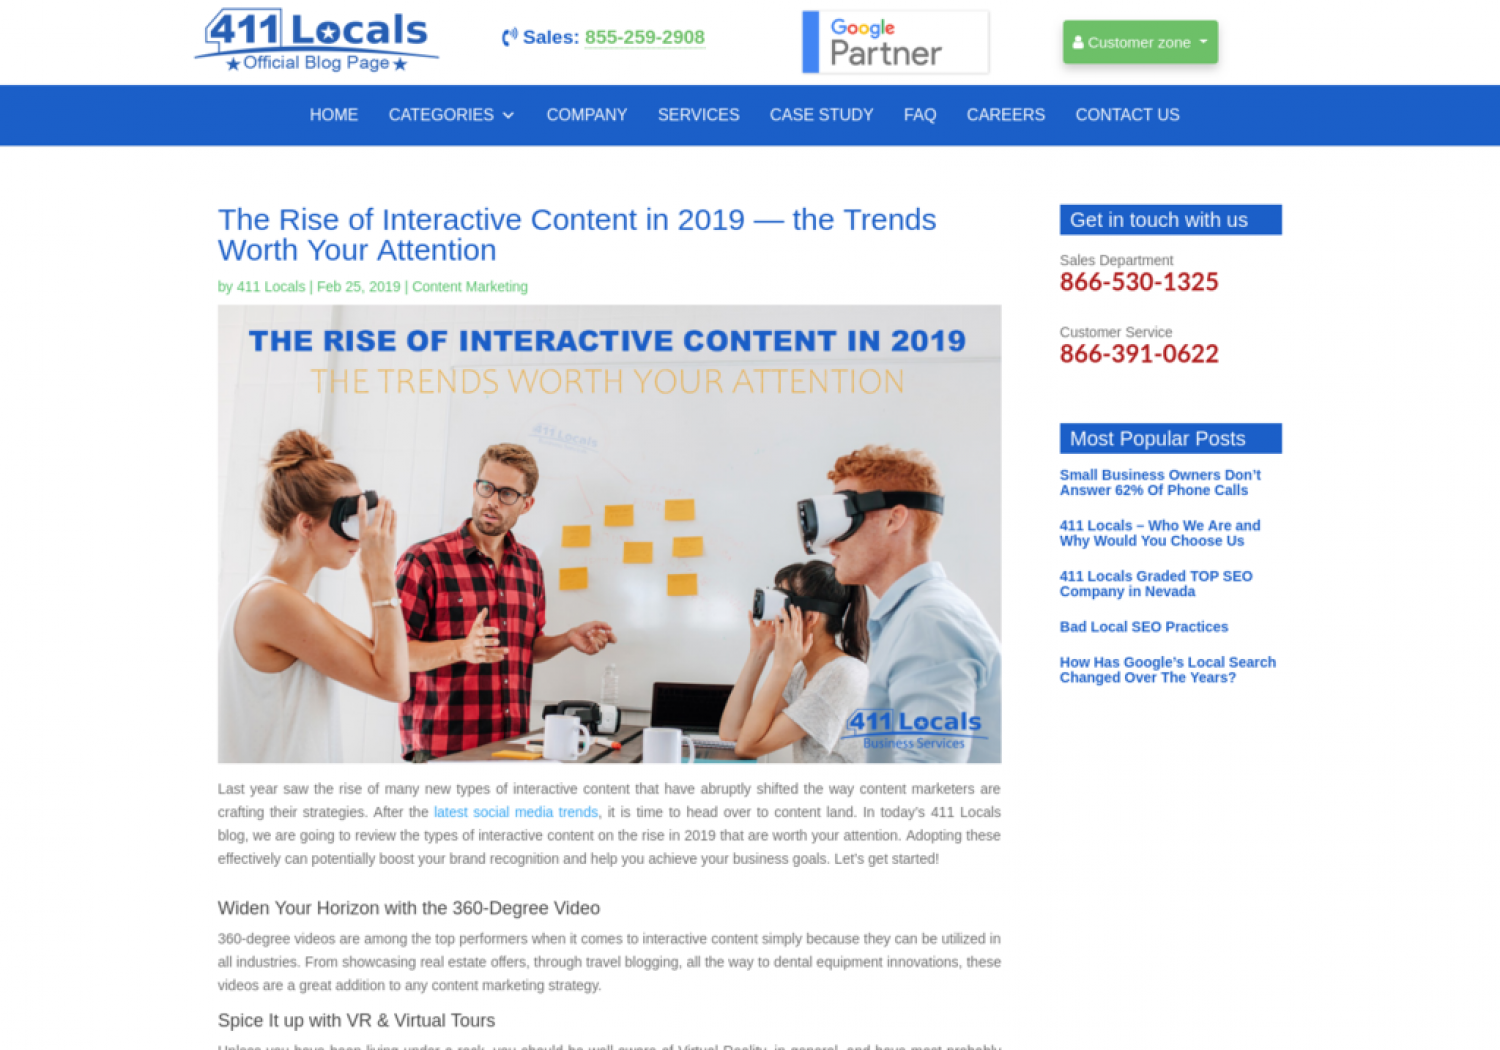 The Rise of Interactive Content in 2019 — the Trends Worth Your Attention Infographic